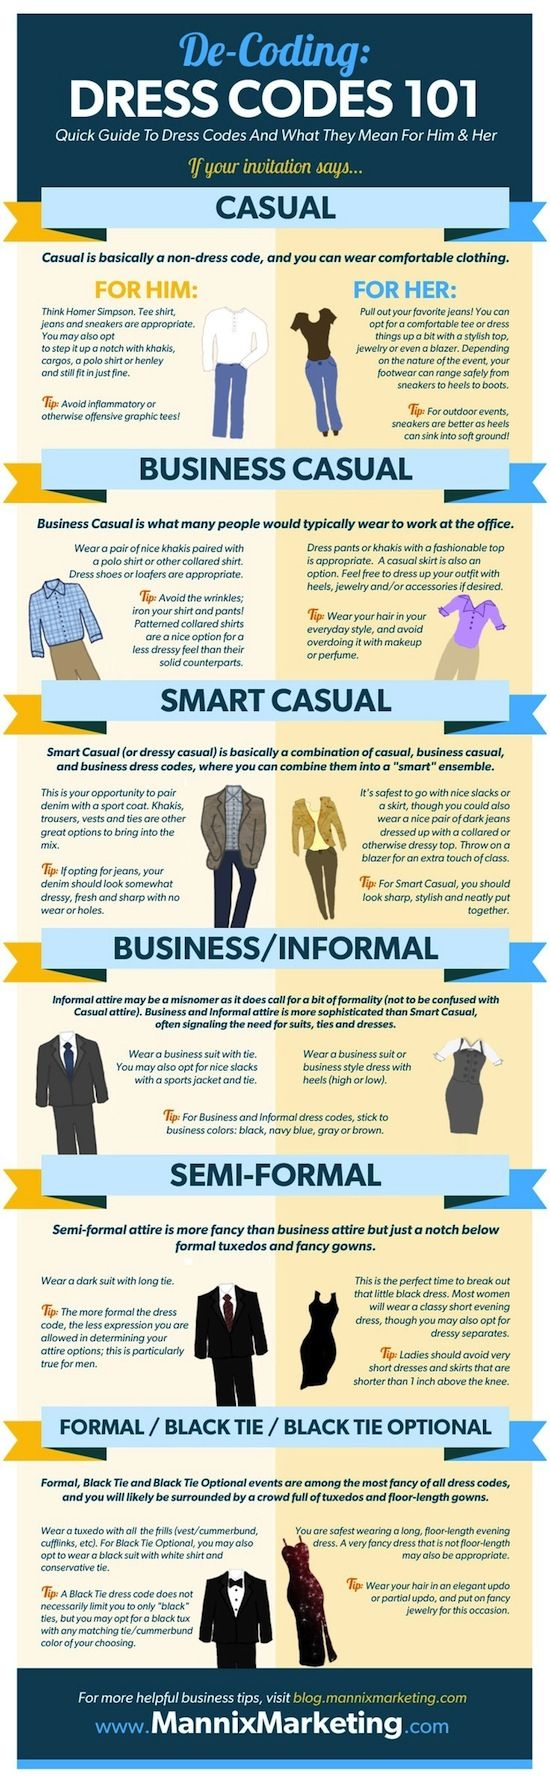 BUT WHAT DOES IT ALL MEAN! Here's your guide from business casual to semi-formal and everything in between!